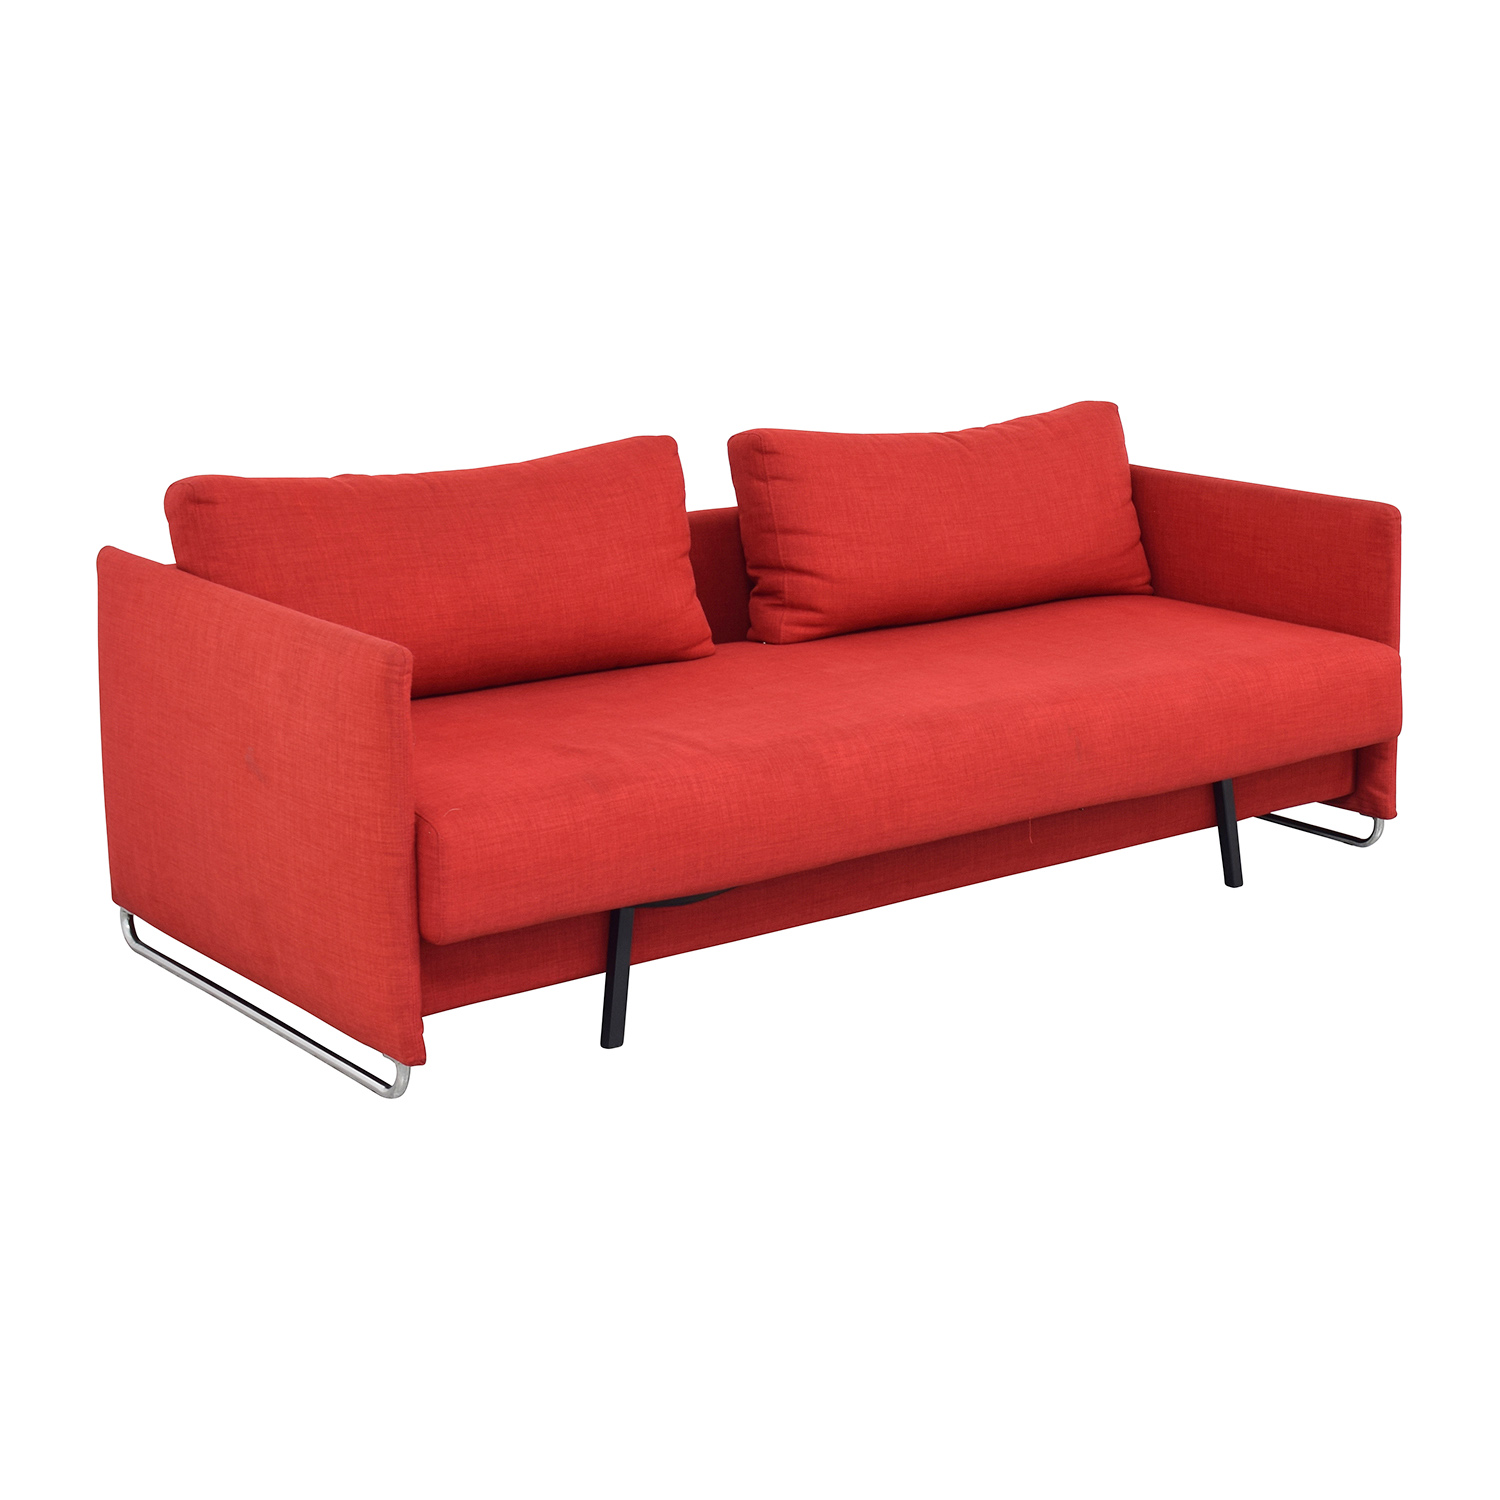 74% OFF - CB2 CB2 Tandom Red Sleeper Sofa / Sofas